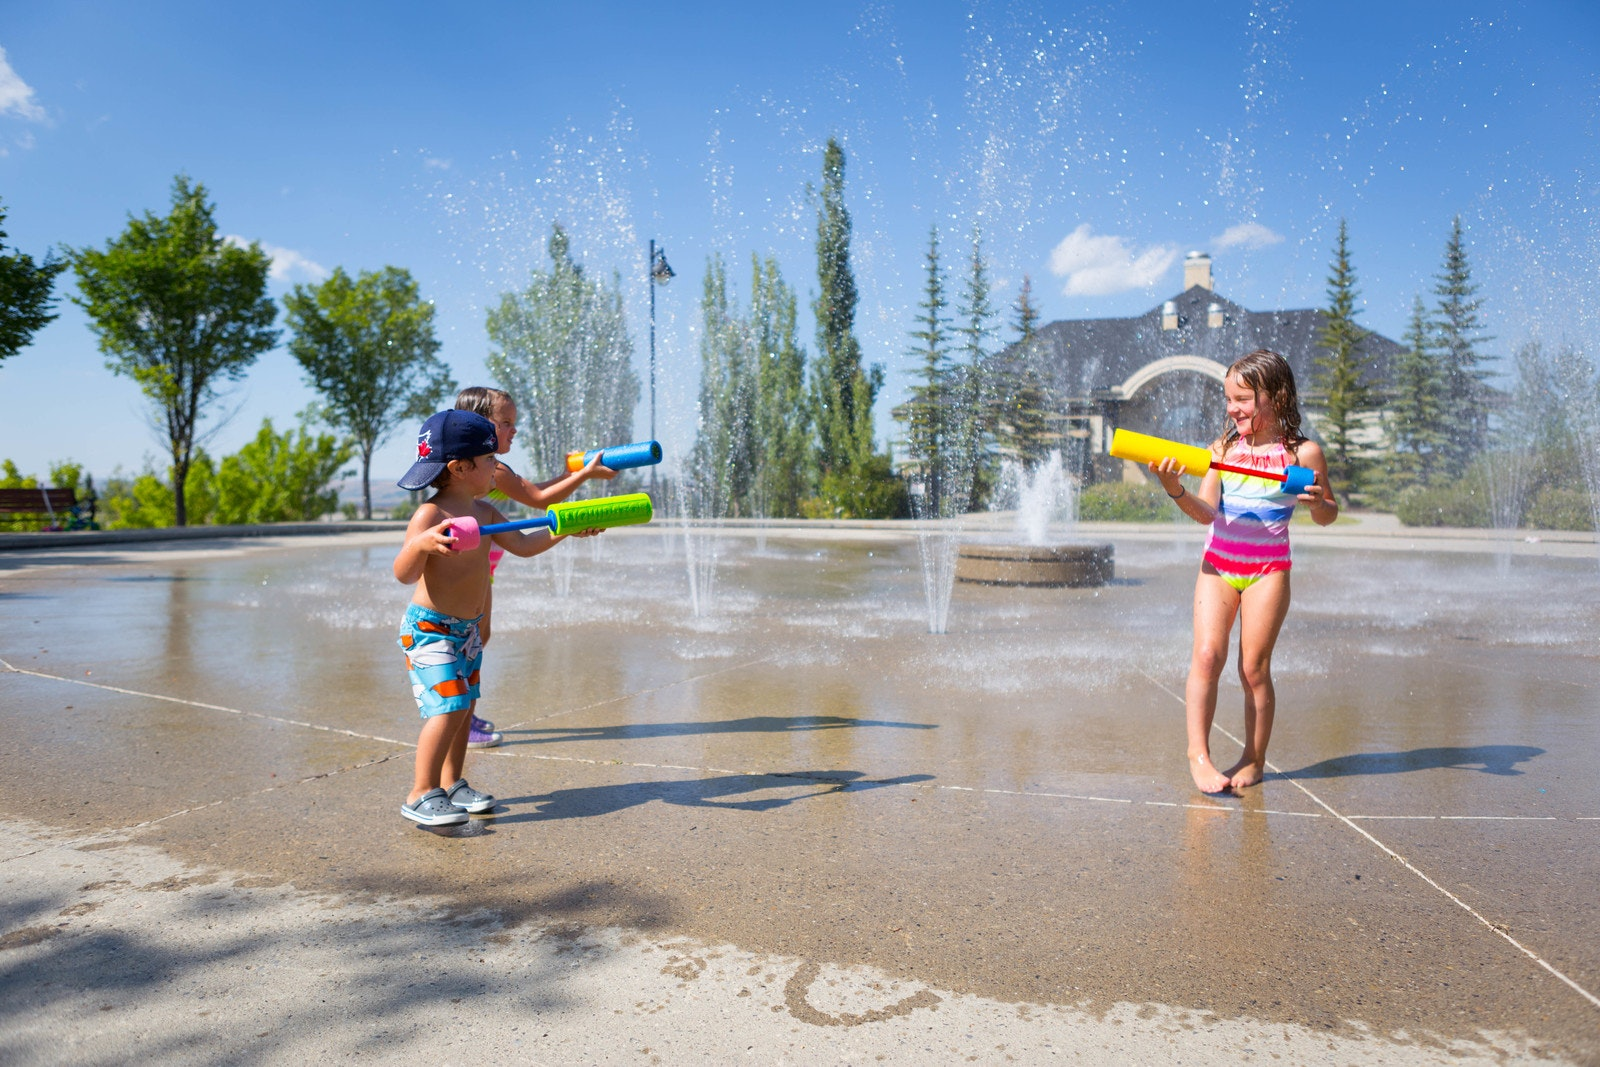 Children playing in a spray park on a summer day